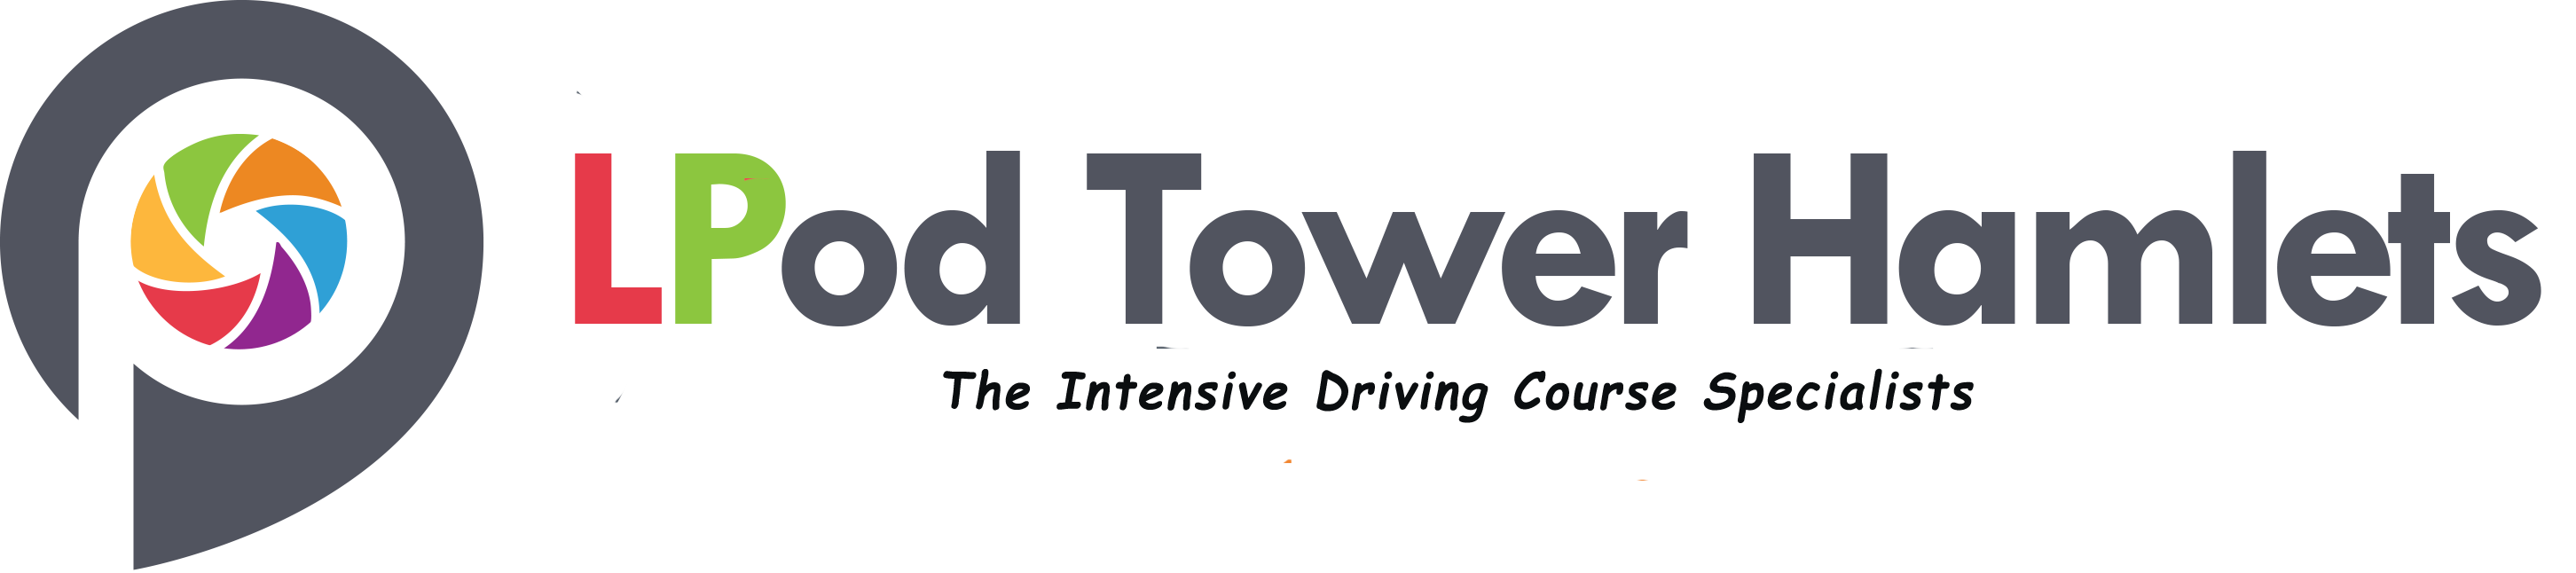 intensive driving courses tower hamlets, intensive driving lessons tower hamlets, intensive driving school tower hamlets